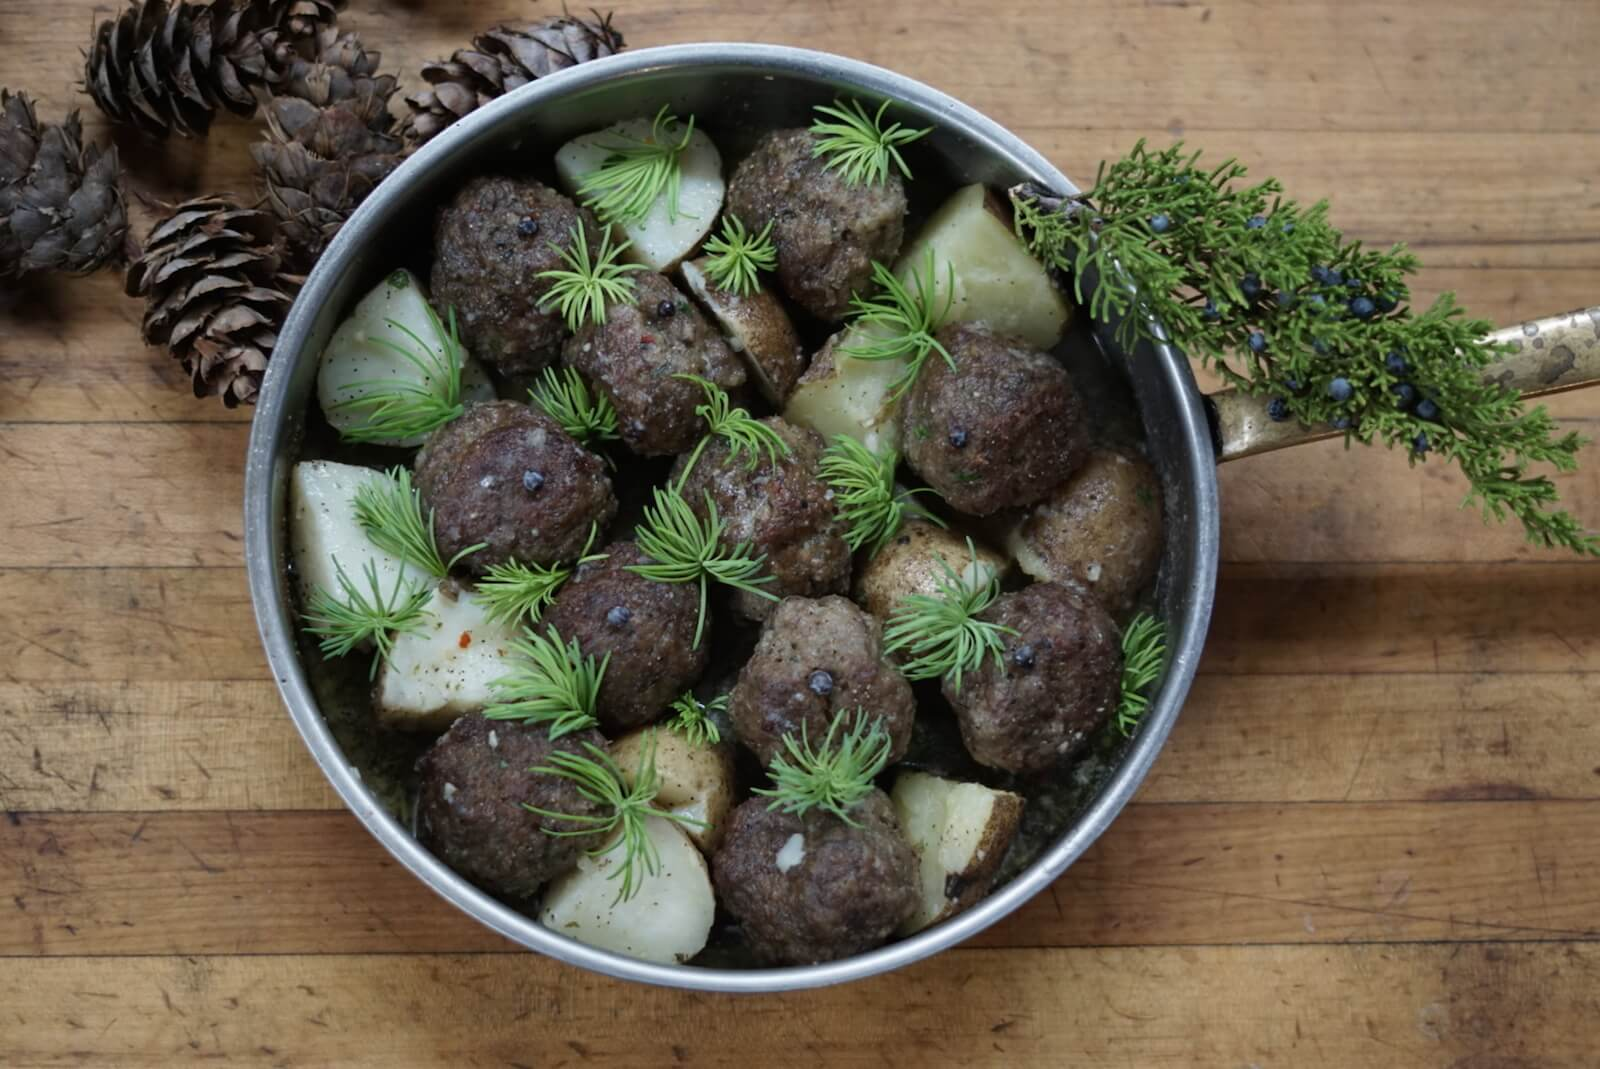 Recipe for Nordic Meatballs served with potatoes and pine sprouts